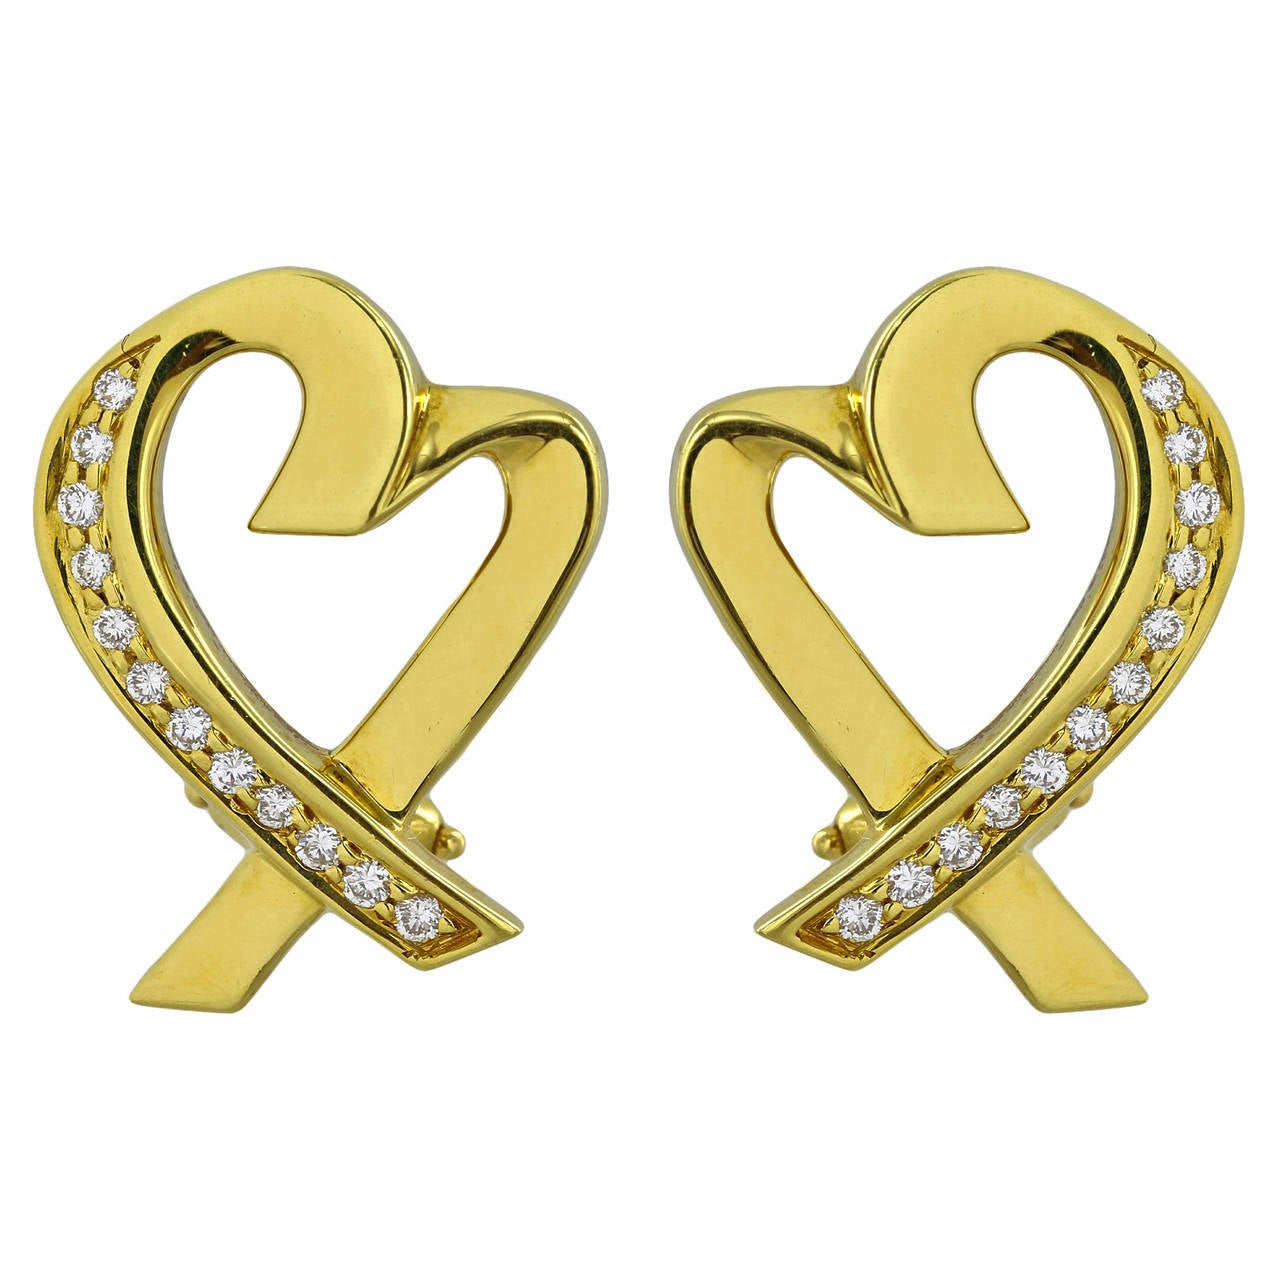 Tiffany & Co. Paloma Picasso Diamond Gold Heart Earrings